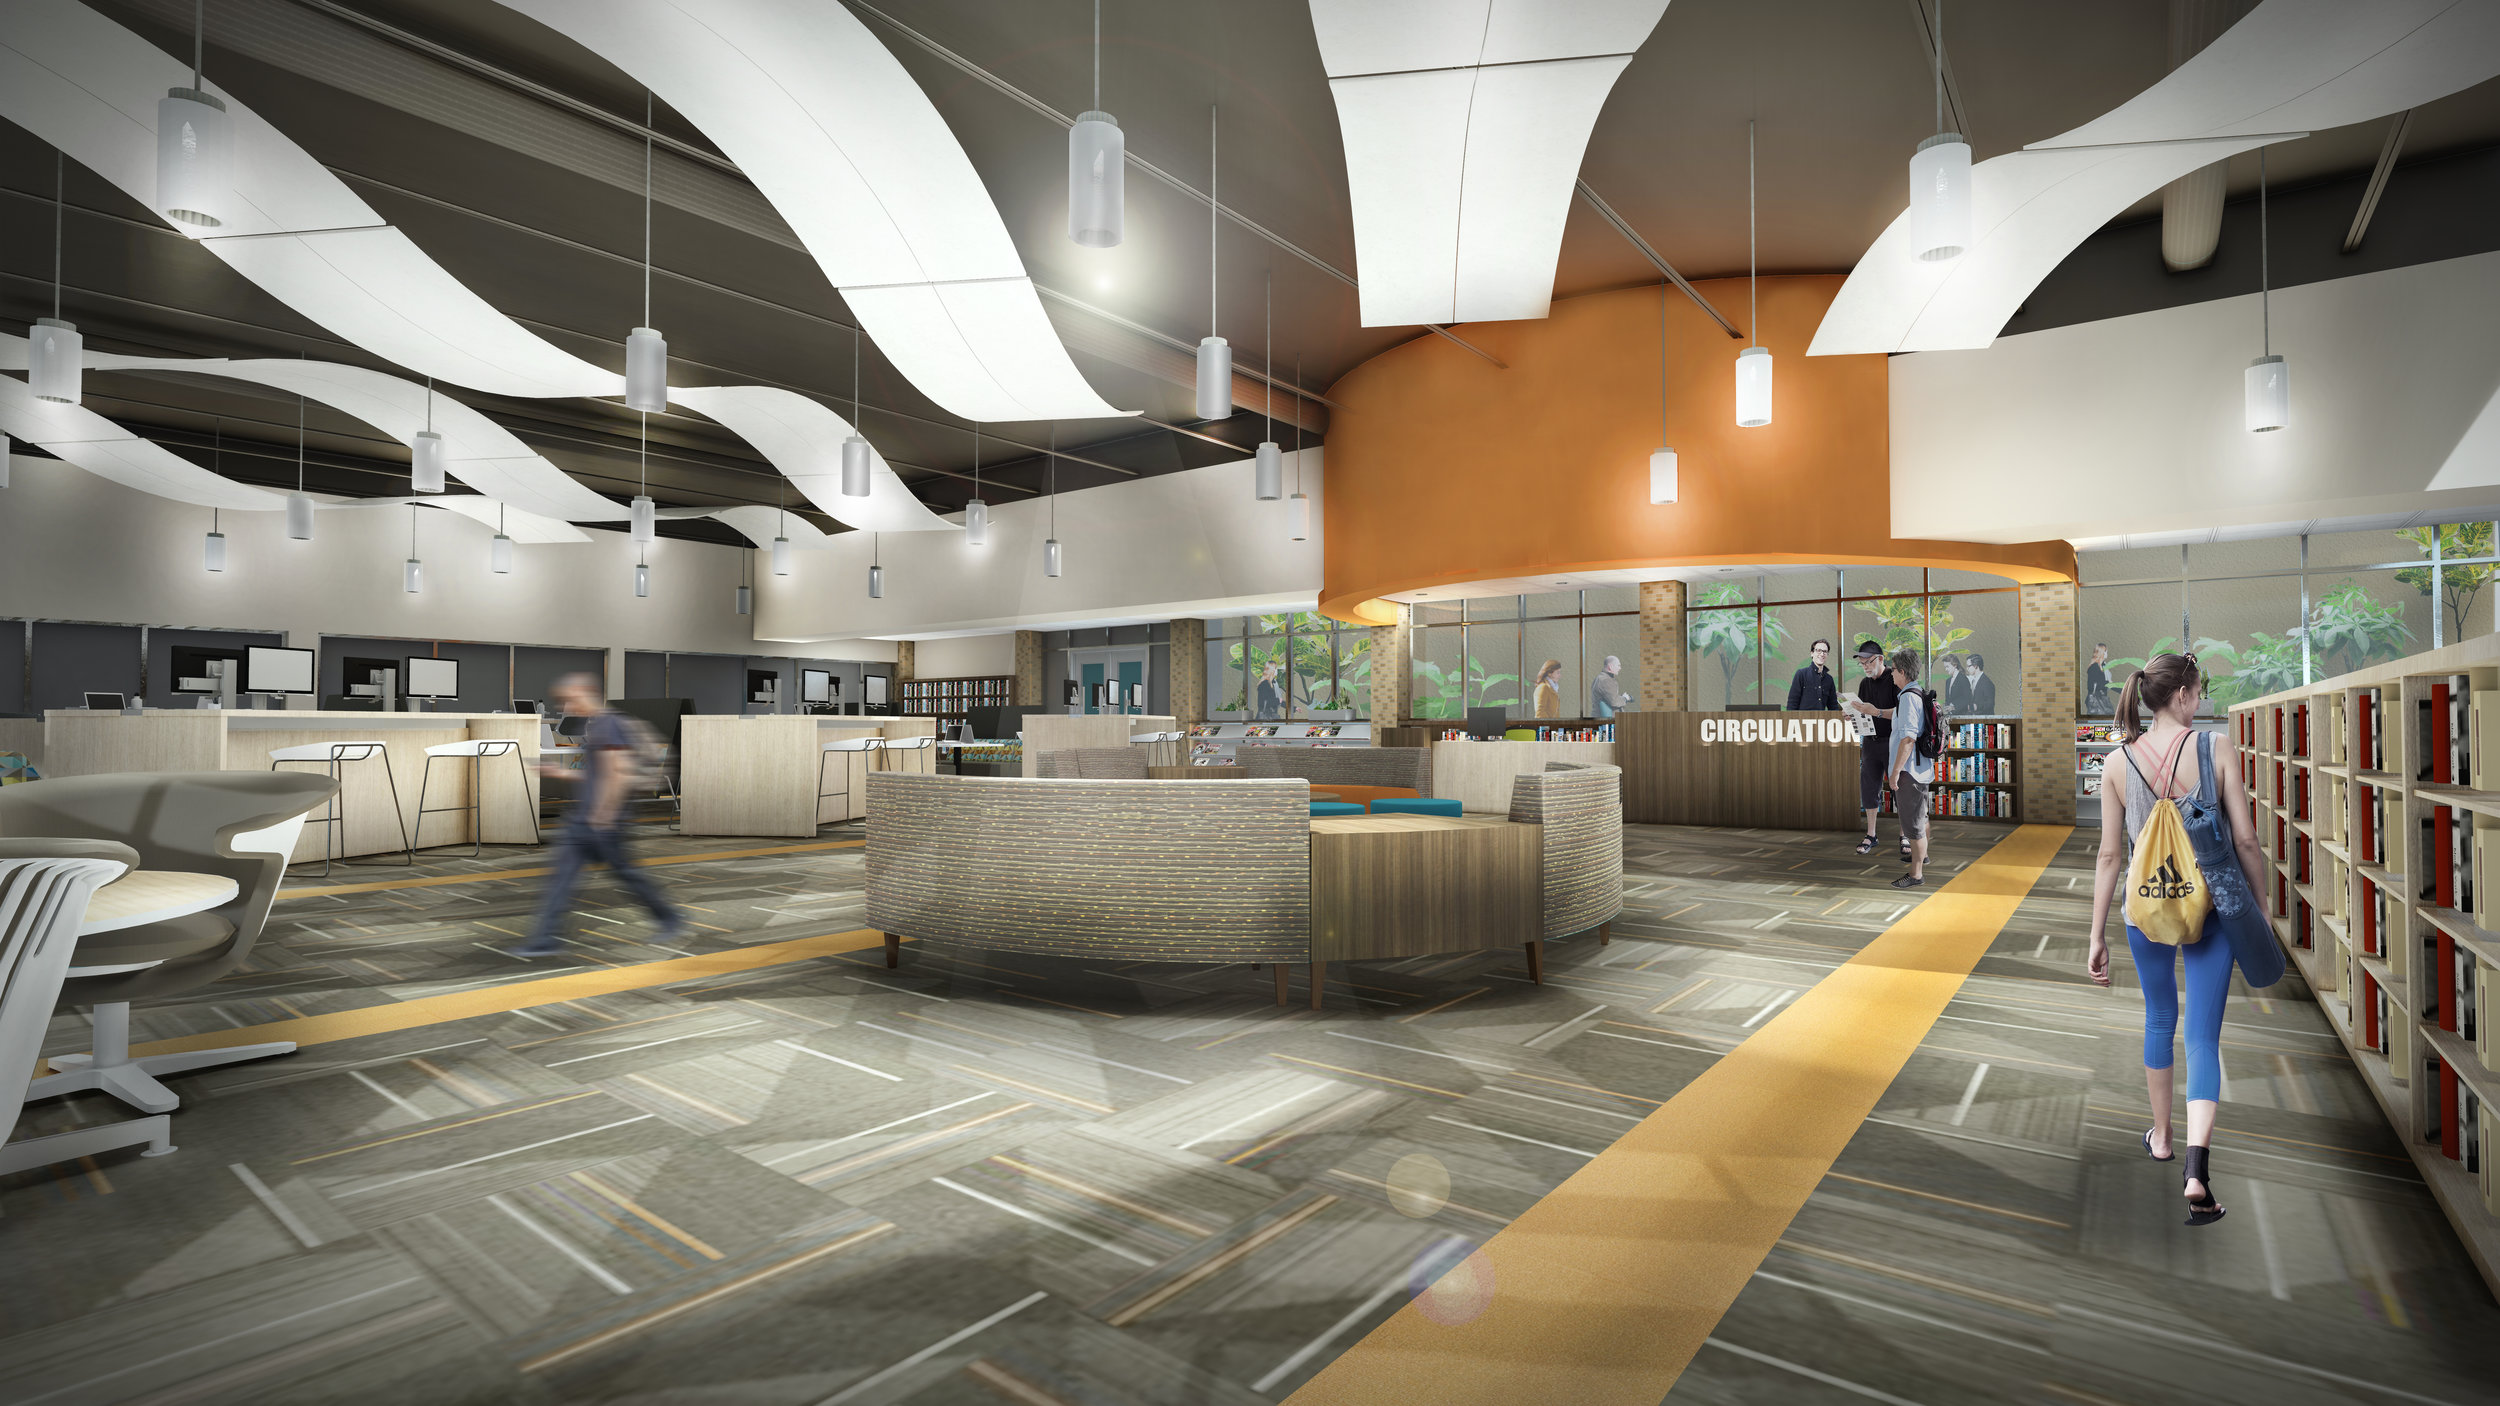 Renders of the Dowagiac School, worked on  Revit, Lumion and Photoshop